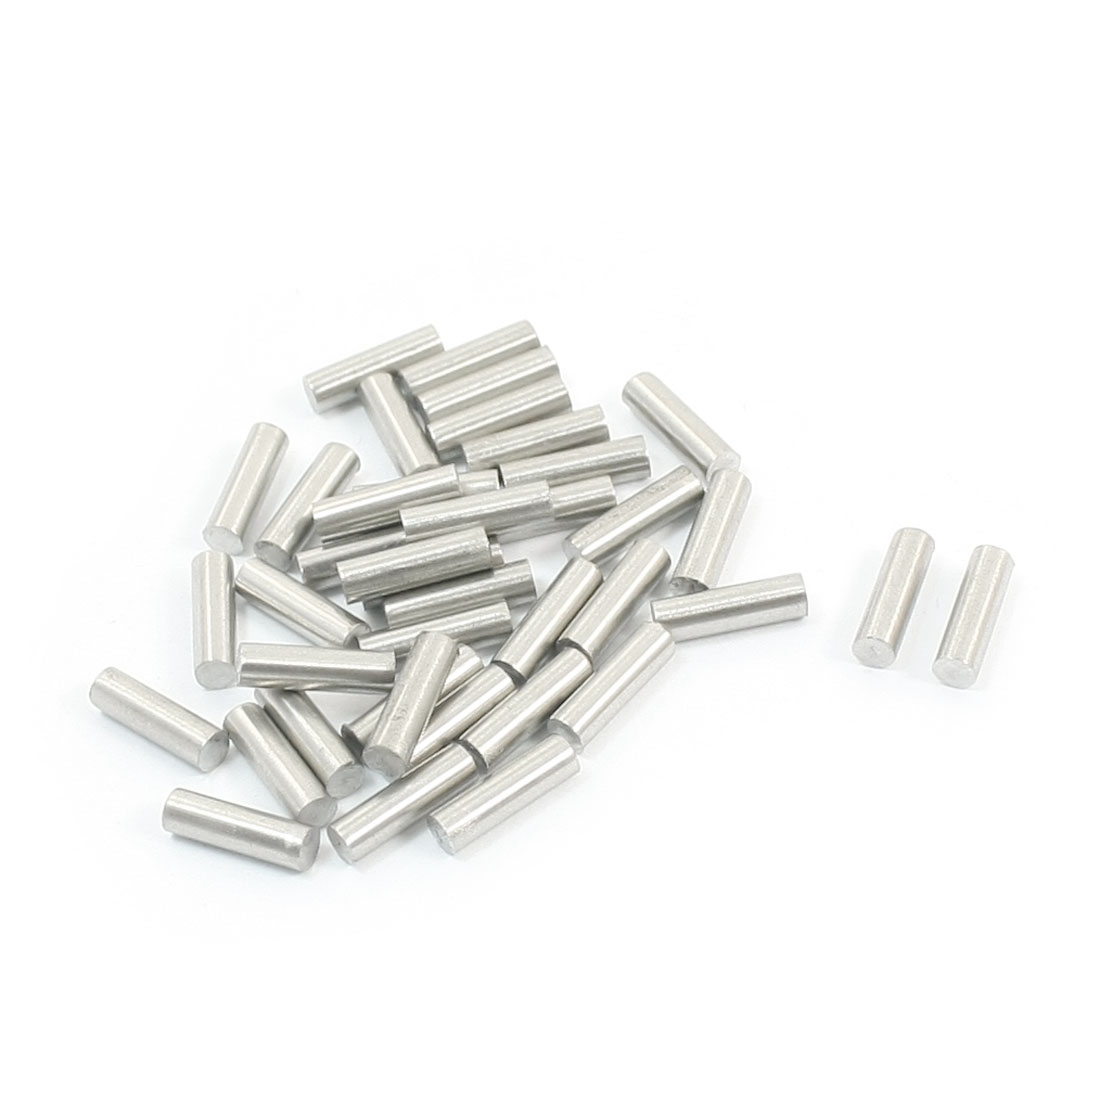 40Pcs Stainless Steel Machinery Parts Component Round Bar 10x3mm